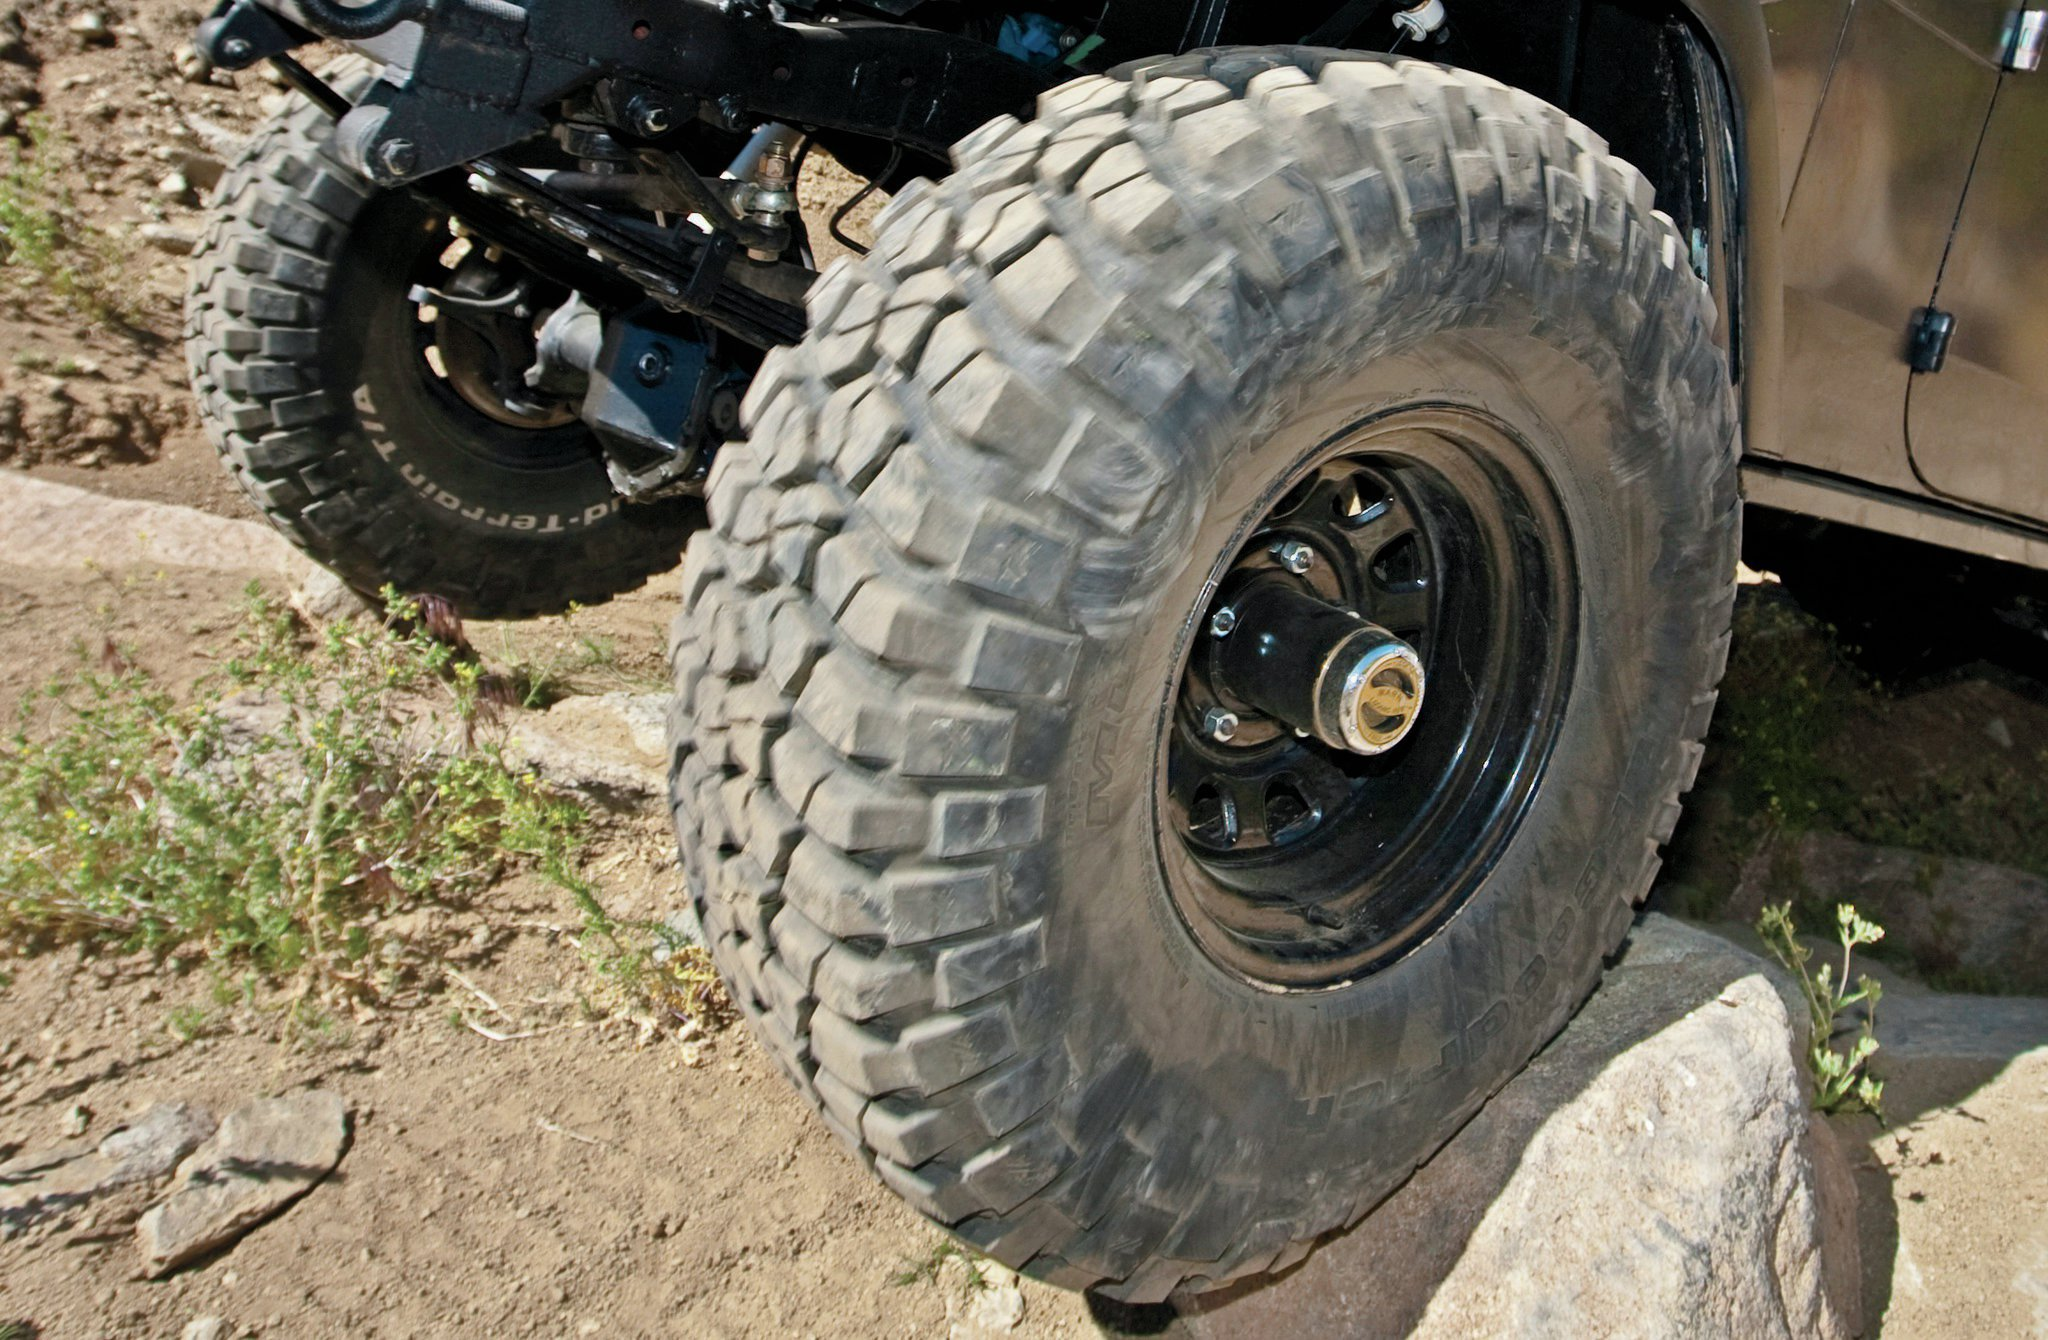 Steel wheels bend rather than break upon impact, which typically only occurs at high speeds or low air pressure. The steel wheel can be bent back into shape with a hammer to hold air and limp off the trail, but it should be replaced once you return home.